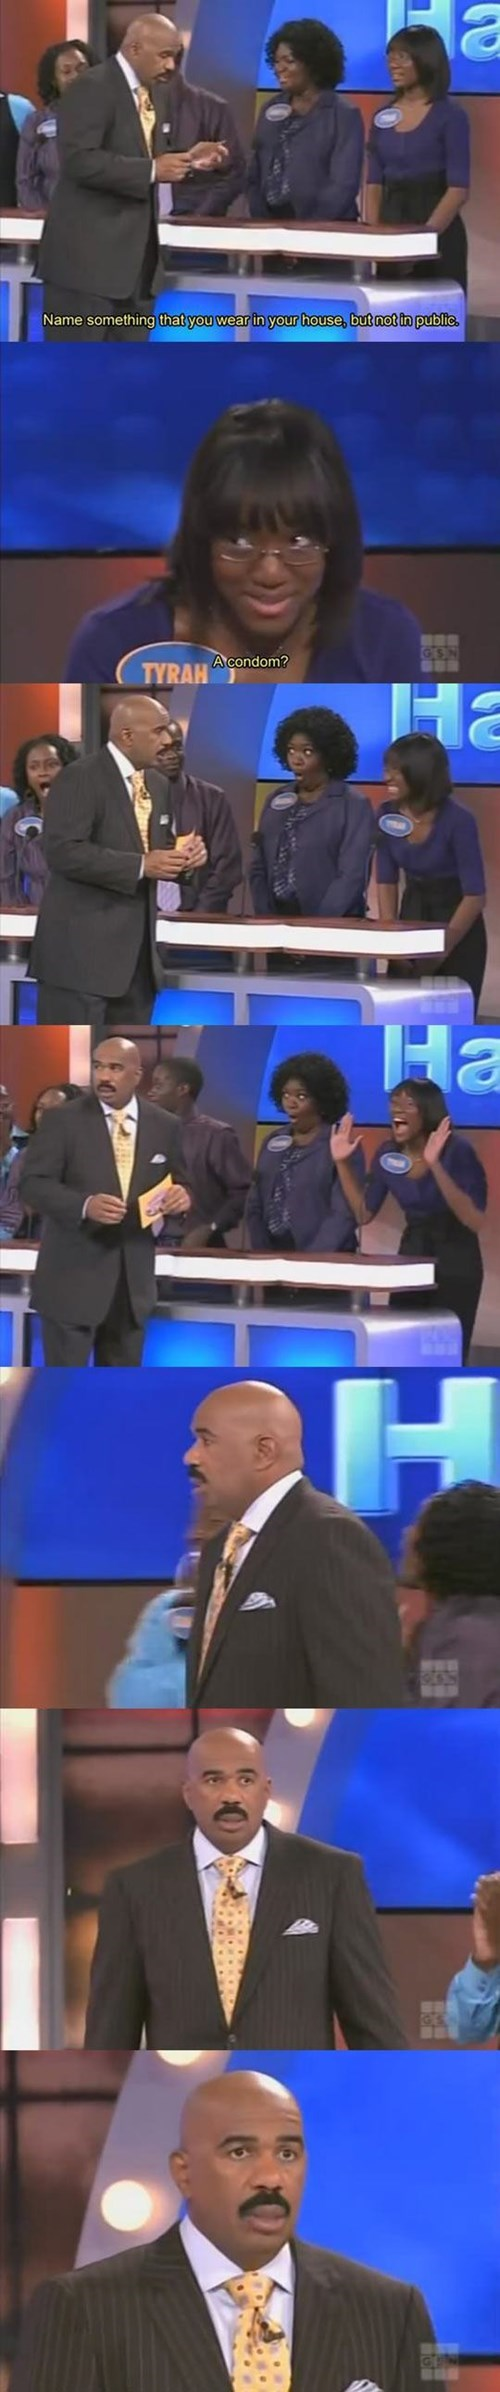 game show,family feud,condoms,stupid